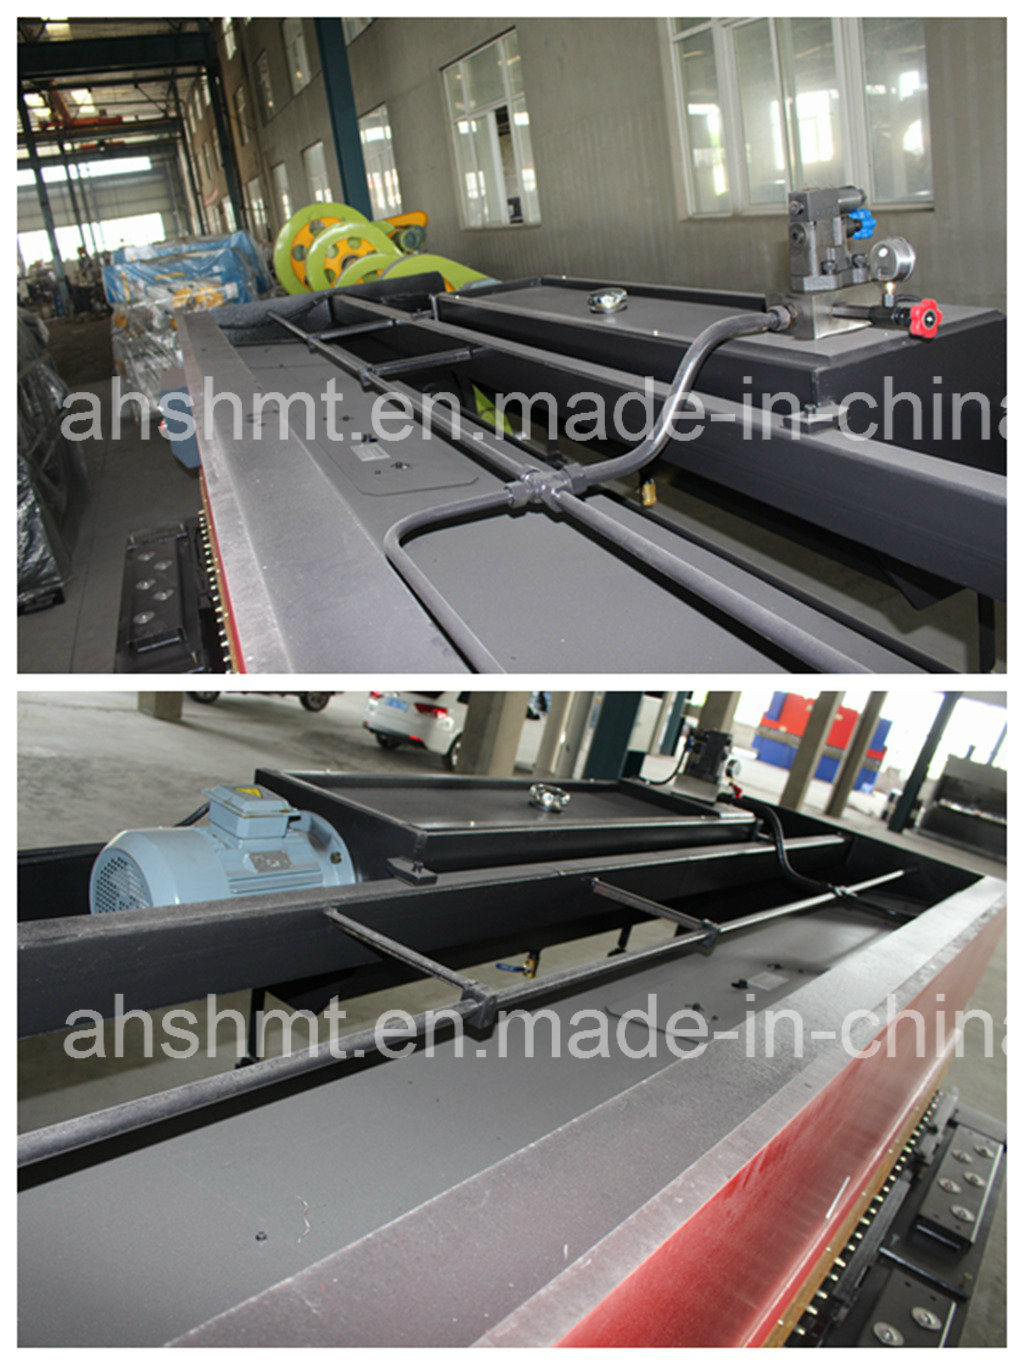 Shearing Machine/Hydraulic Shearing Machine/Plate Shearing Machine/ Steel Plate Cutting Machine